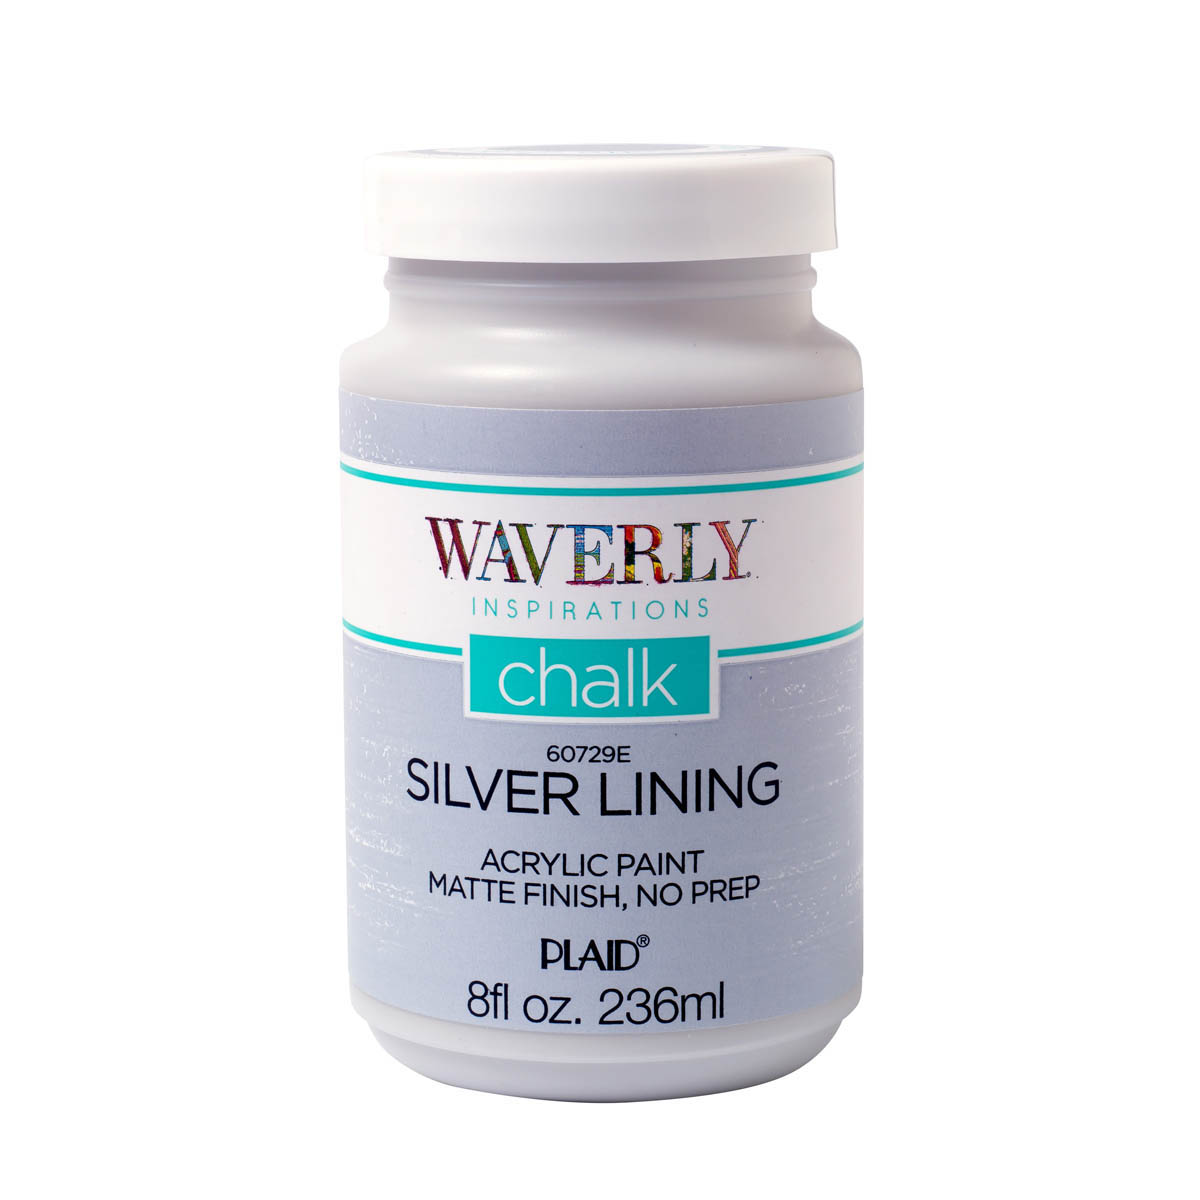 Waverly ® Inspirations Chalk Acrylic Paint - Silver Lining, 8 oz.